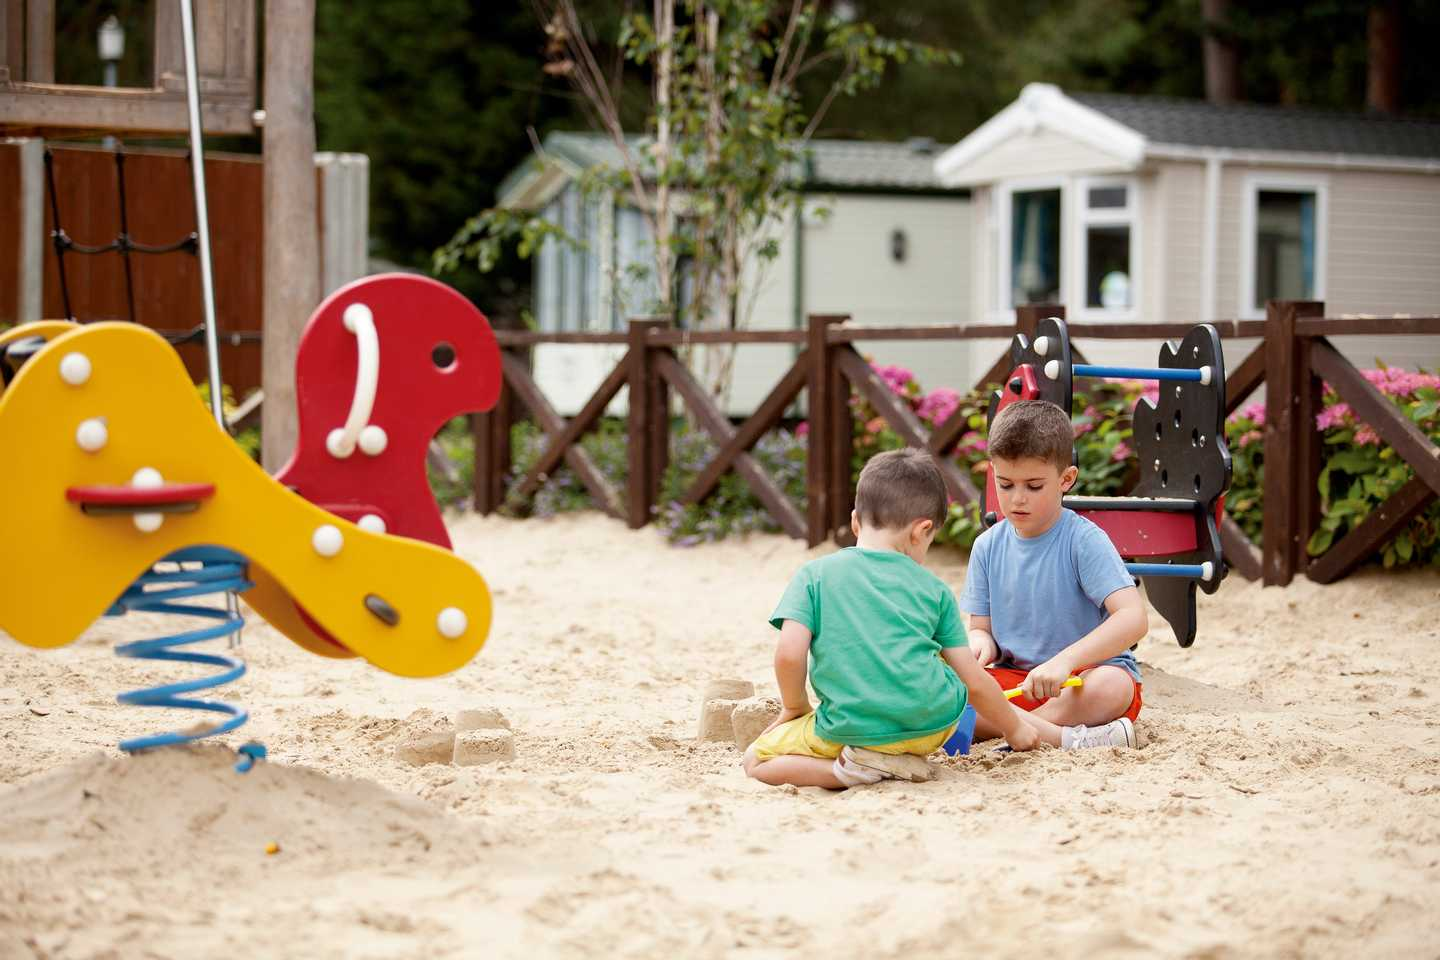 Two children playing in the outdoor play area